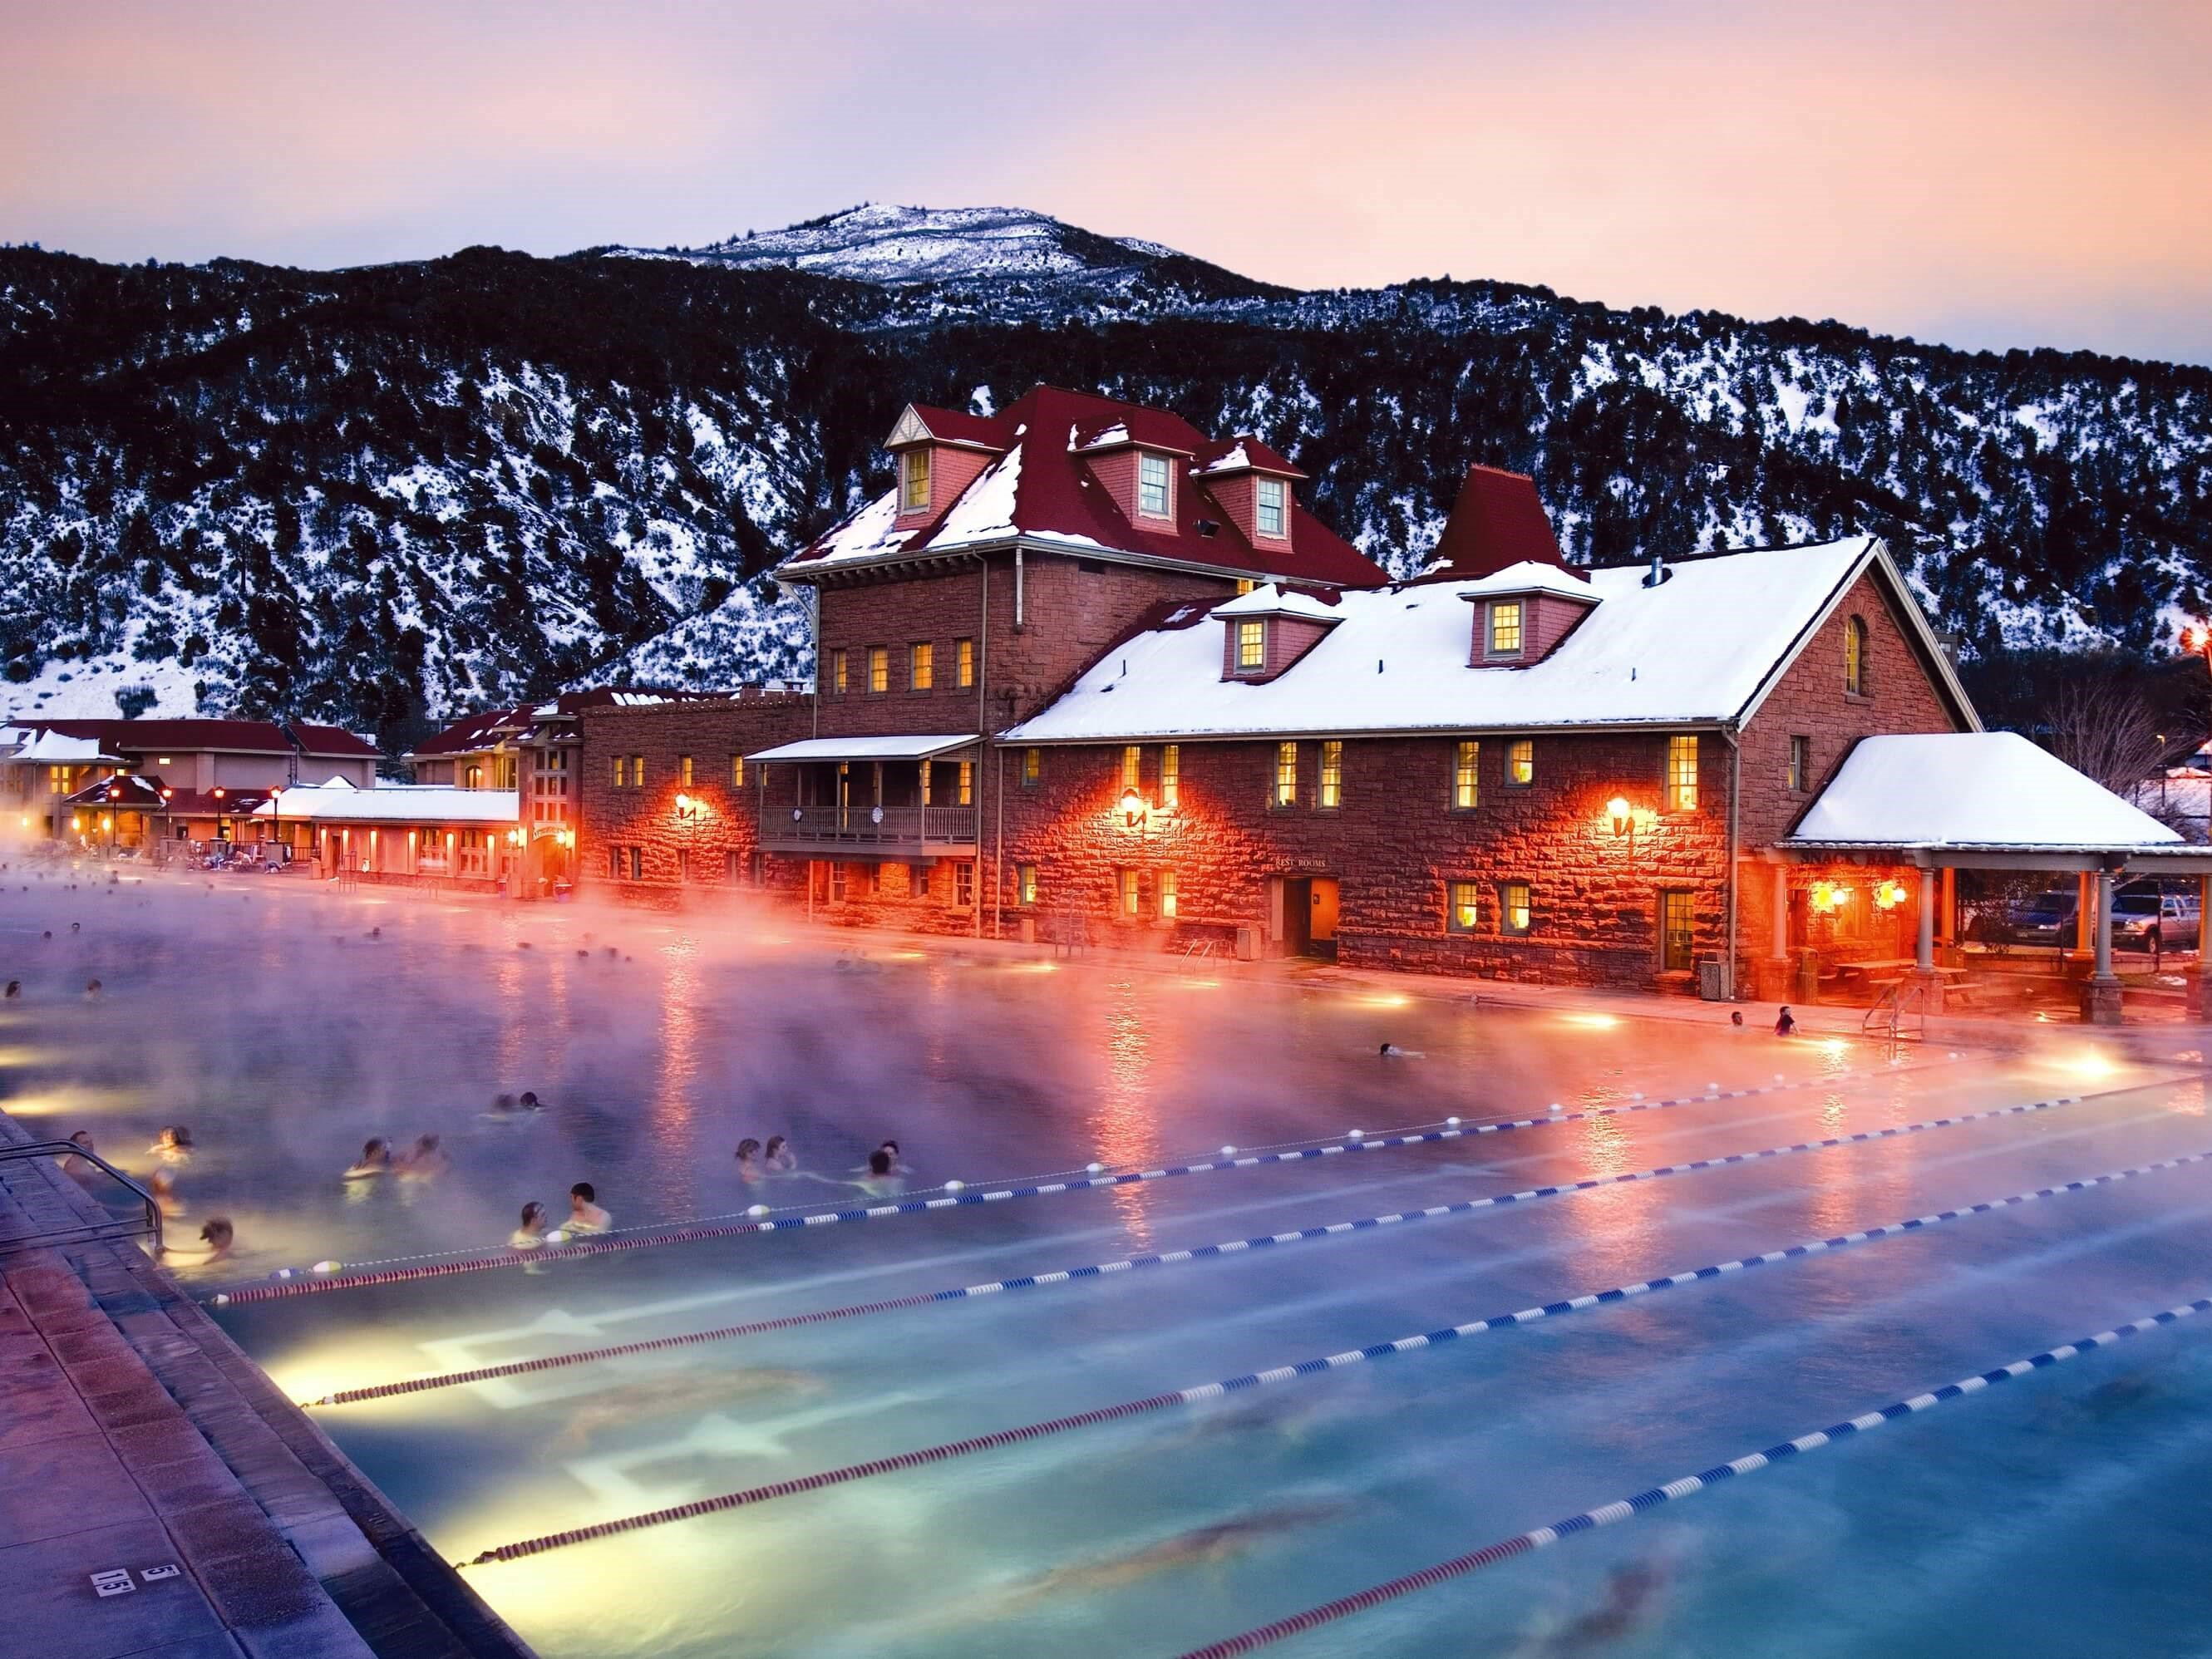 Image of Glenwood Hot Springs Pool